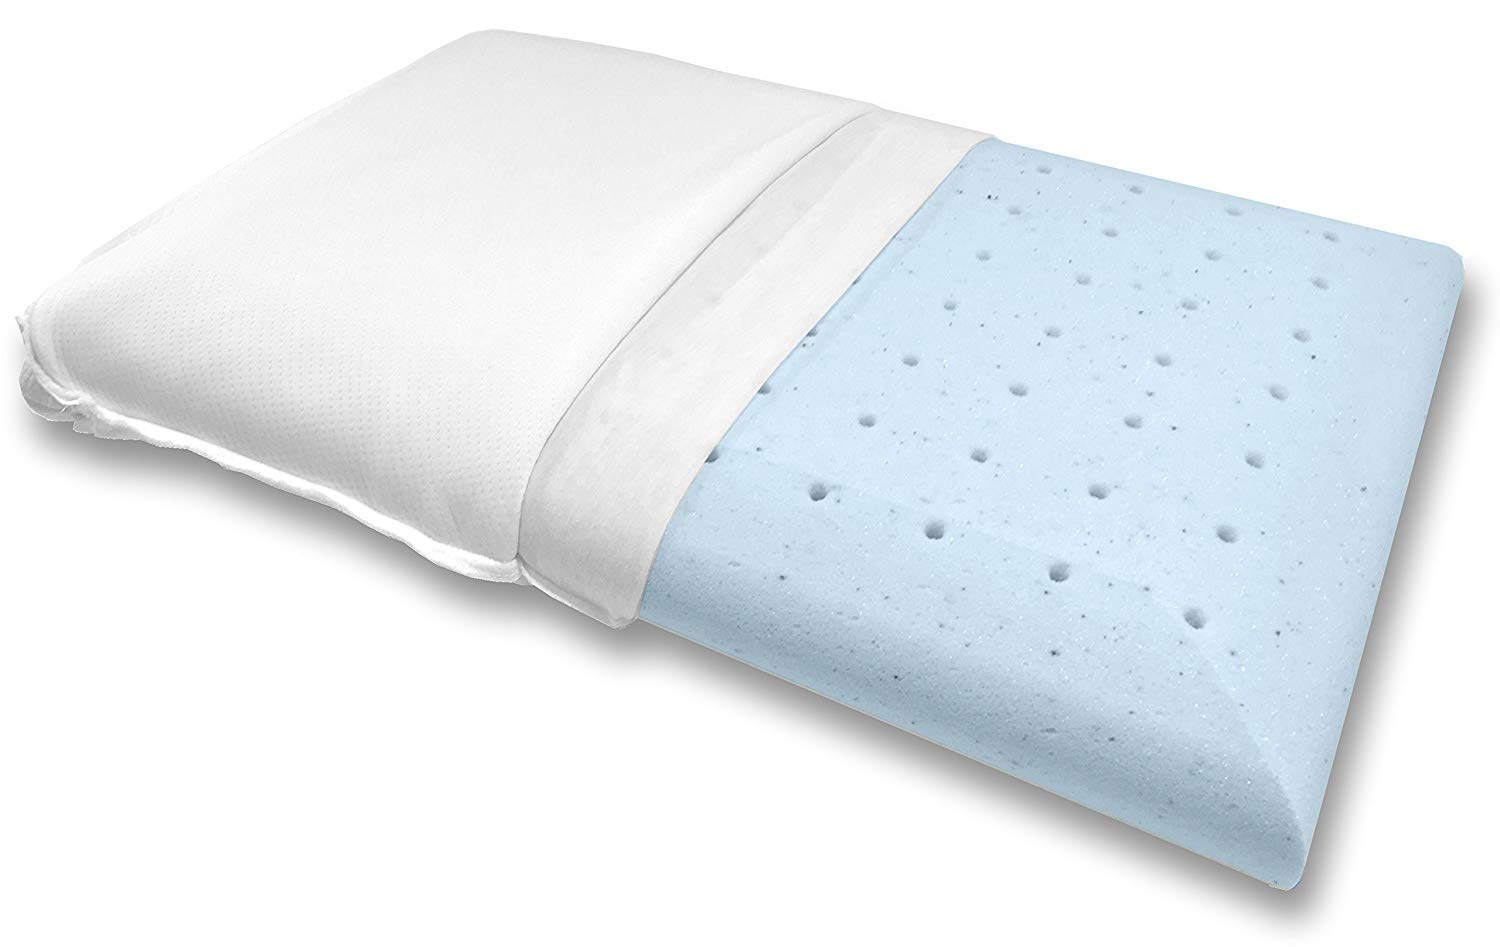 Currently, Elite Rest has the best pillow for neck pain stomach sleeper in 2020. This article provides an overview of the best pillows for stomach sleepers to avoid neck pain.